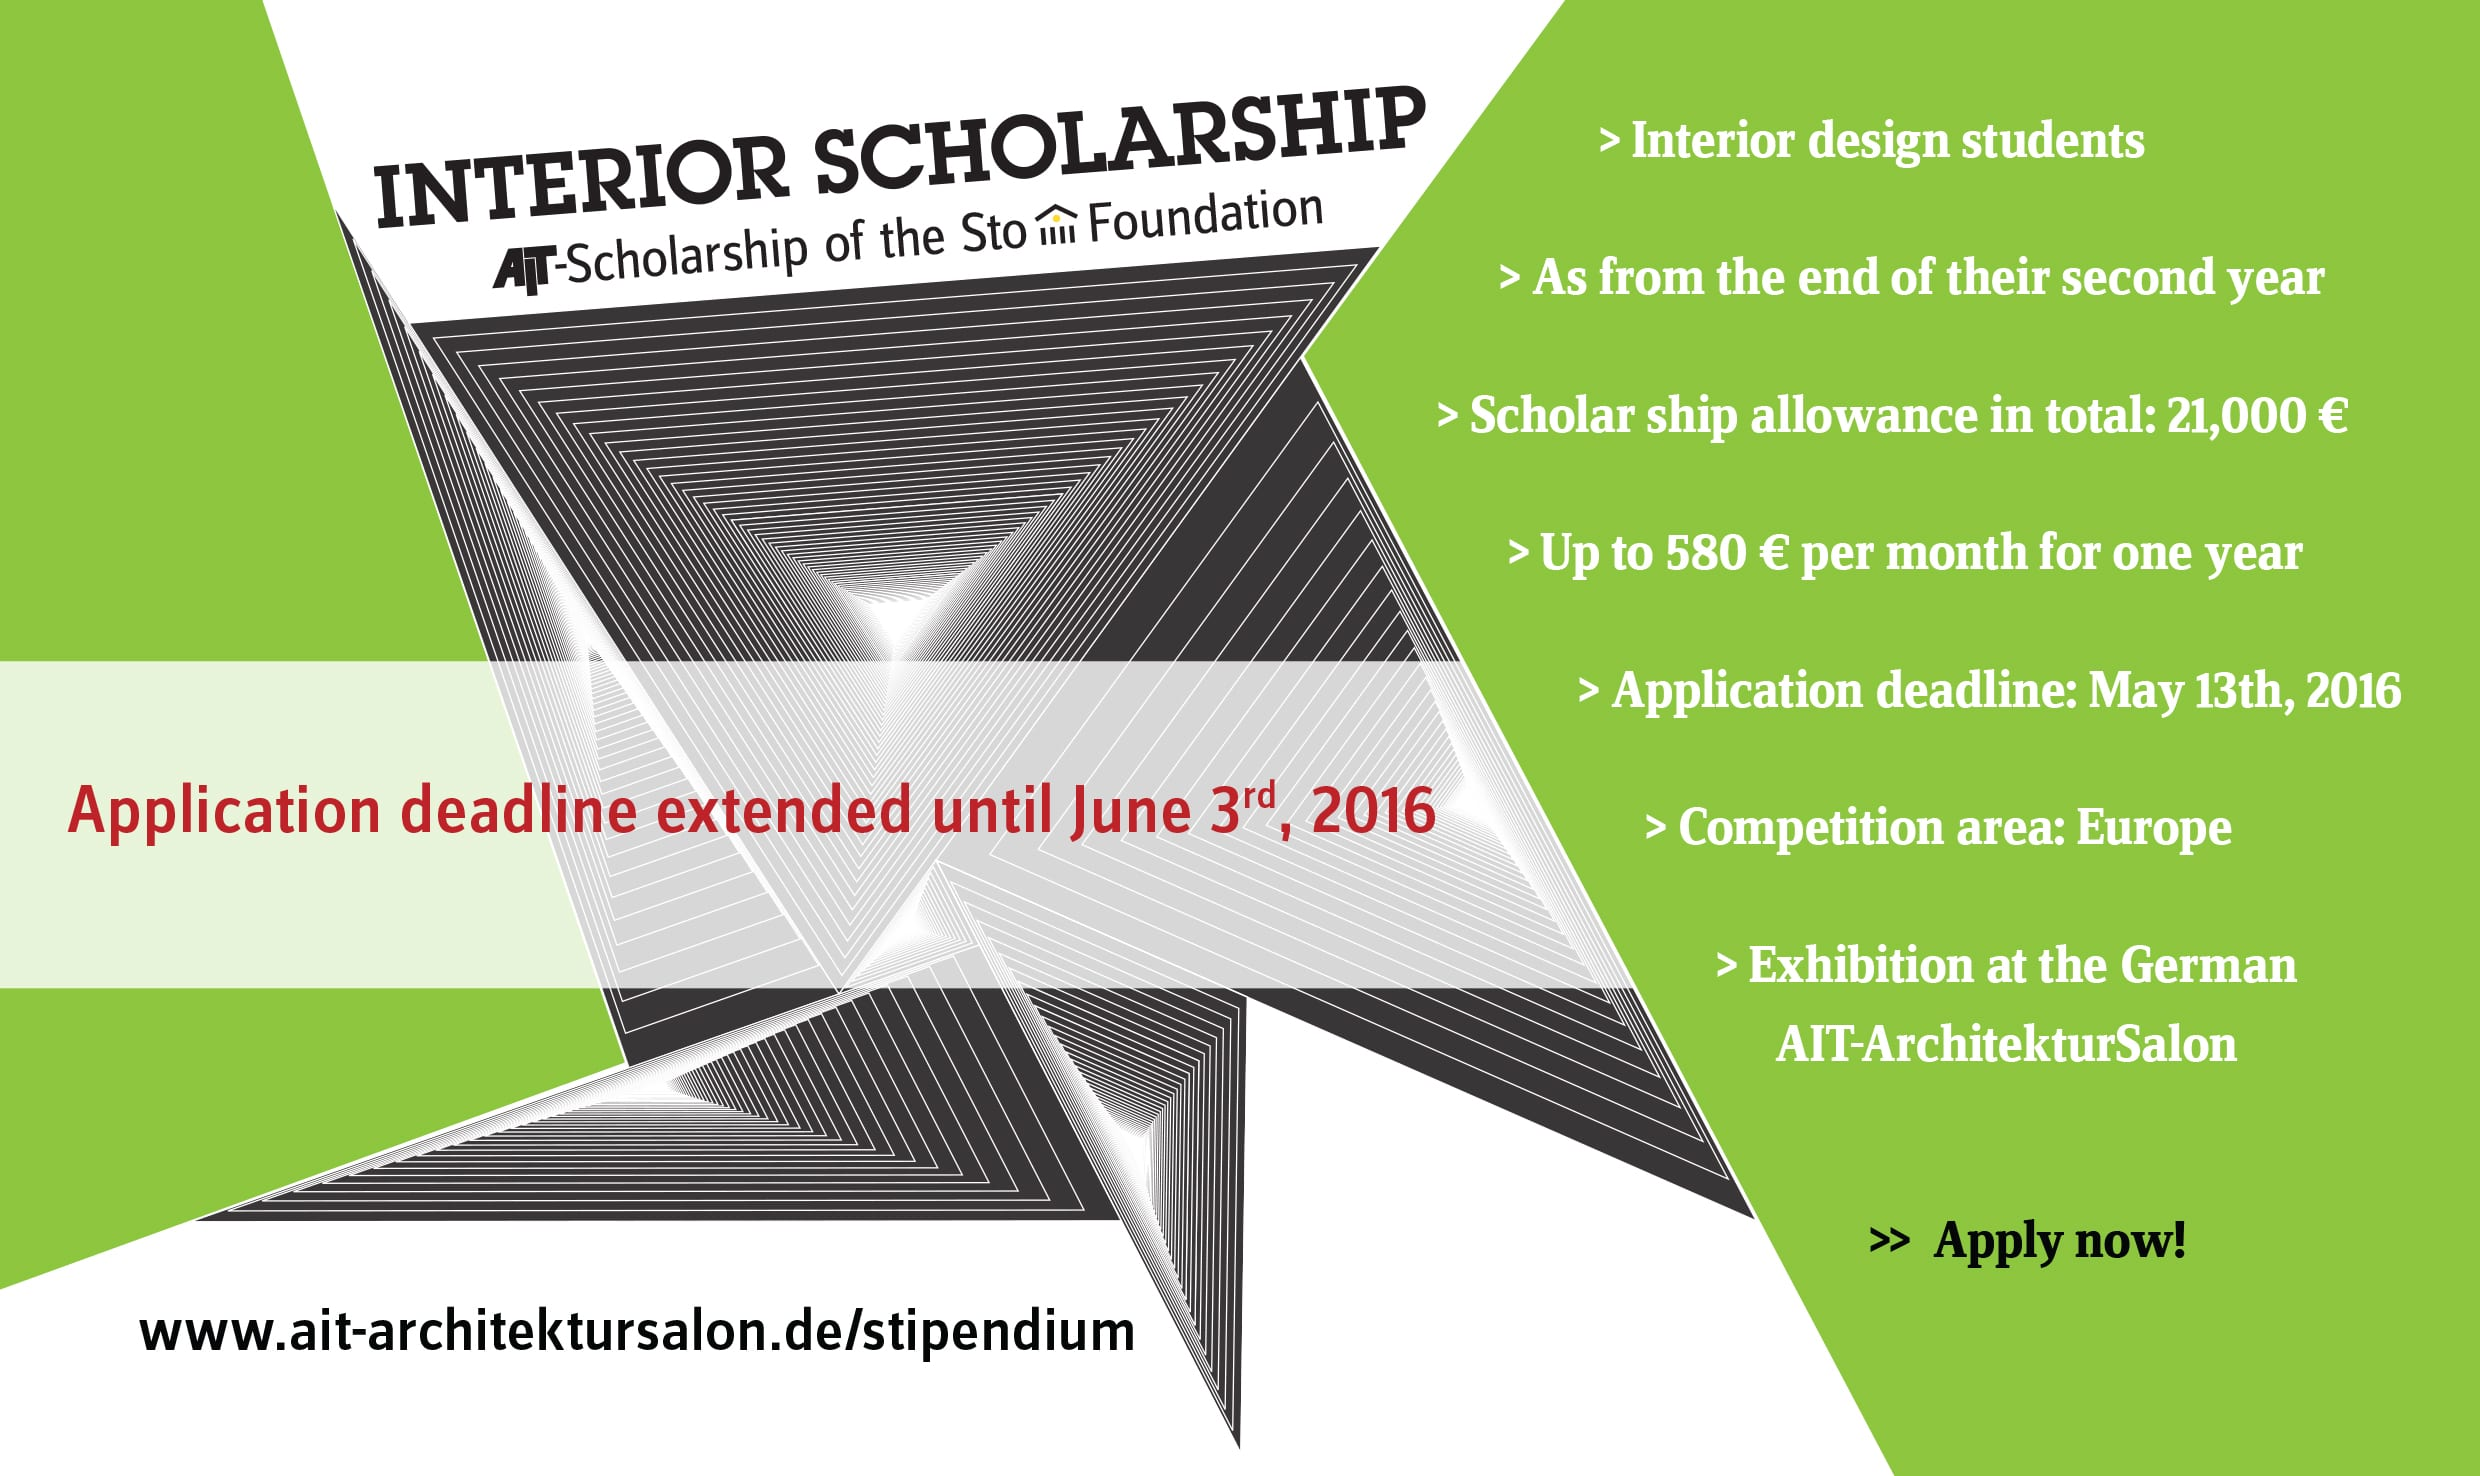 Interior architecture scholarship 2016 school of for Interior design 2016 uk